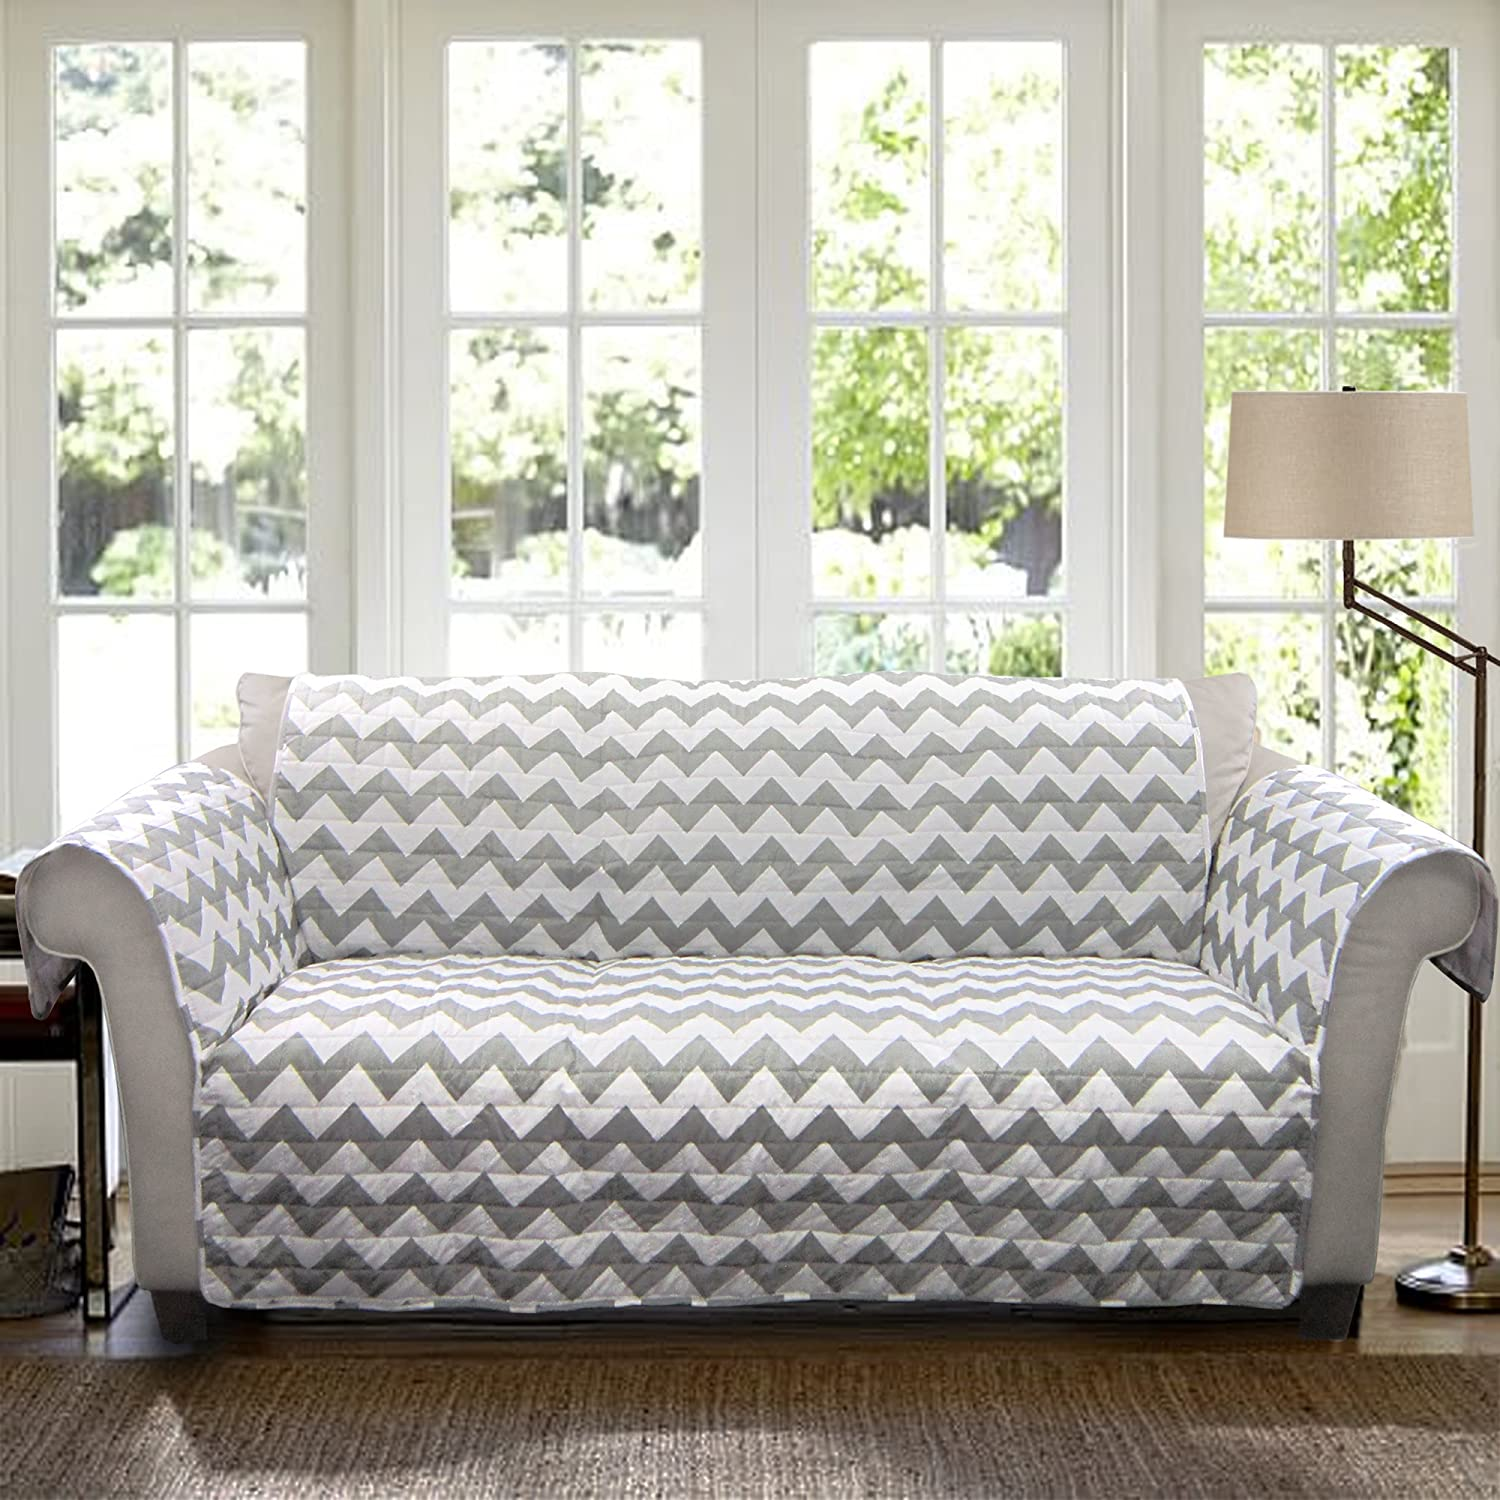 Amazon Lush Decor Chevron Slipcover Furniture Protector for